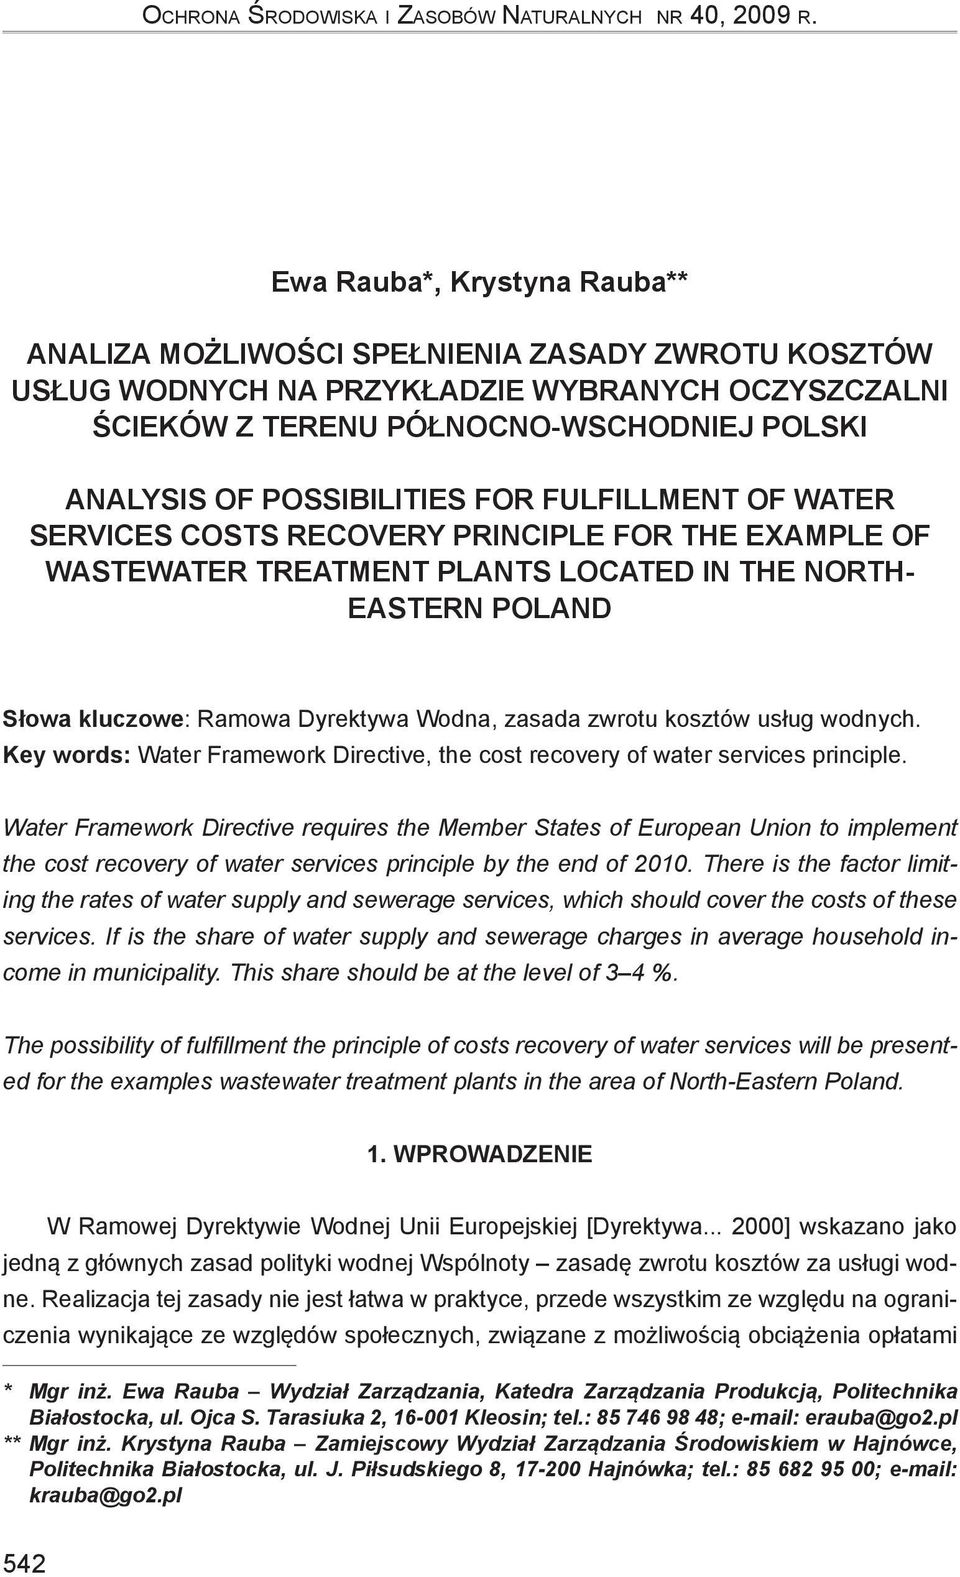 possibilities for fulfillment of water services costs recovery principle for the example of wastewater treatment plants located in the North- Eastern Poland Słowa kluczowe: Ramowa Dyrektywa Wodna,